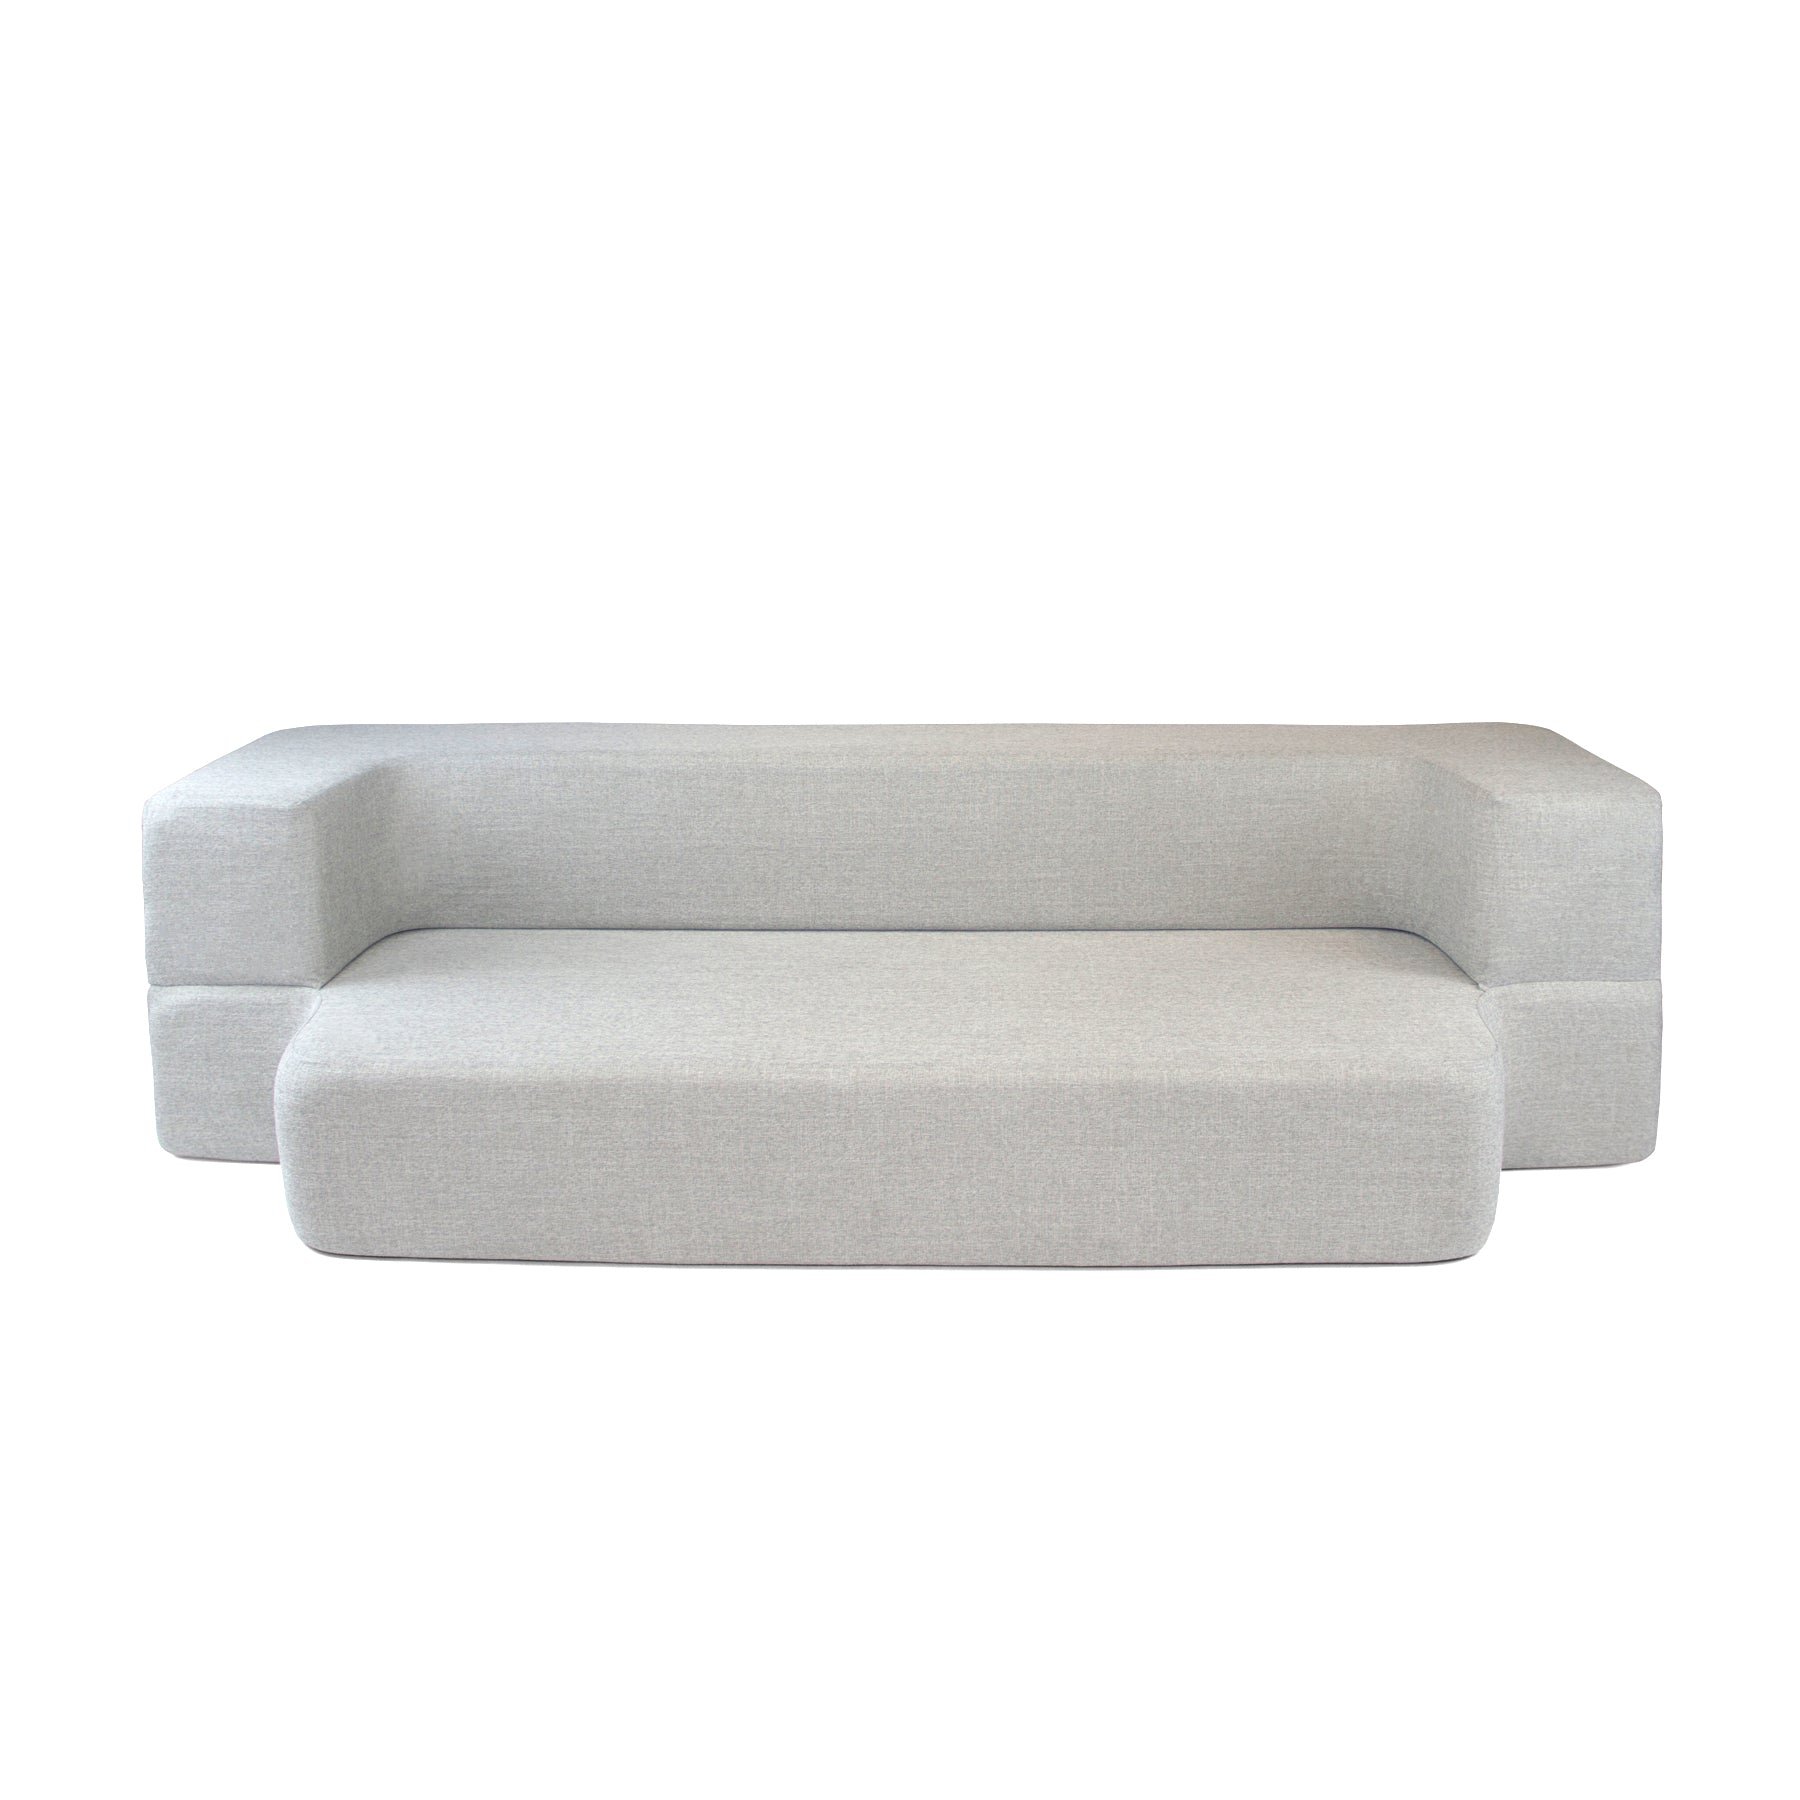 Limestone Couchbed Memory Foam Mattress Meets Comfy Couch  ~ New Mattress For Sofa Bed